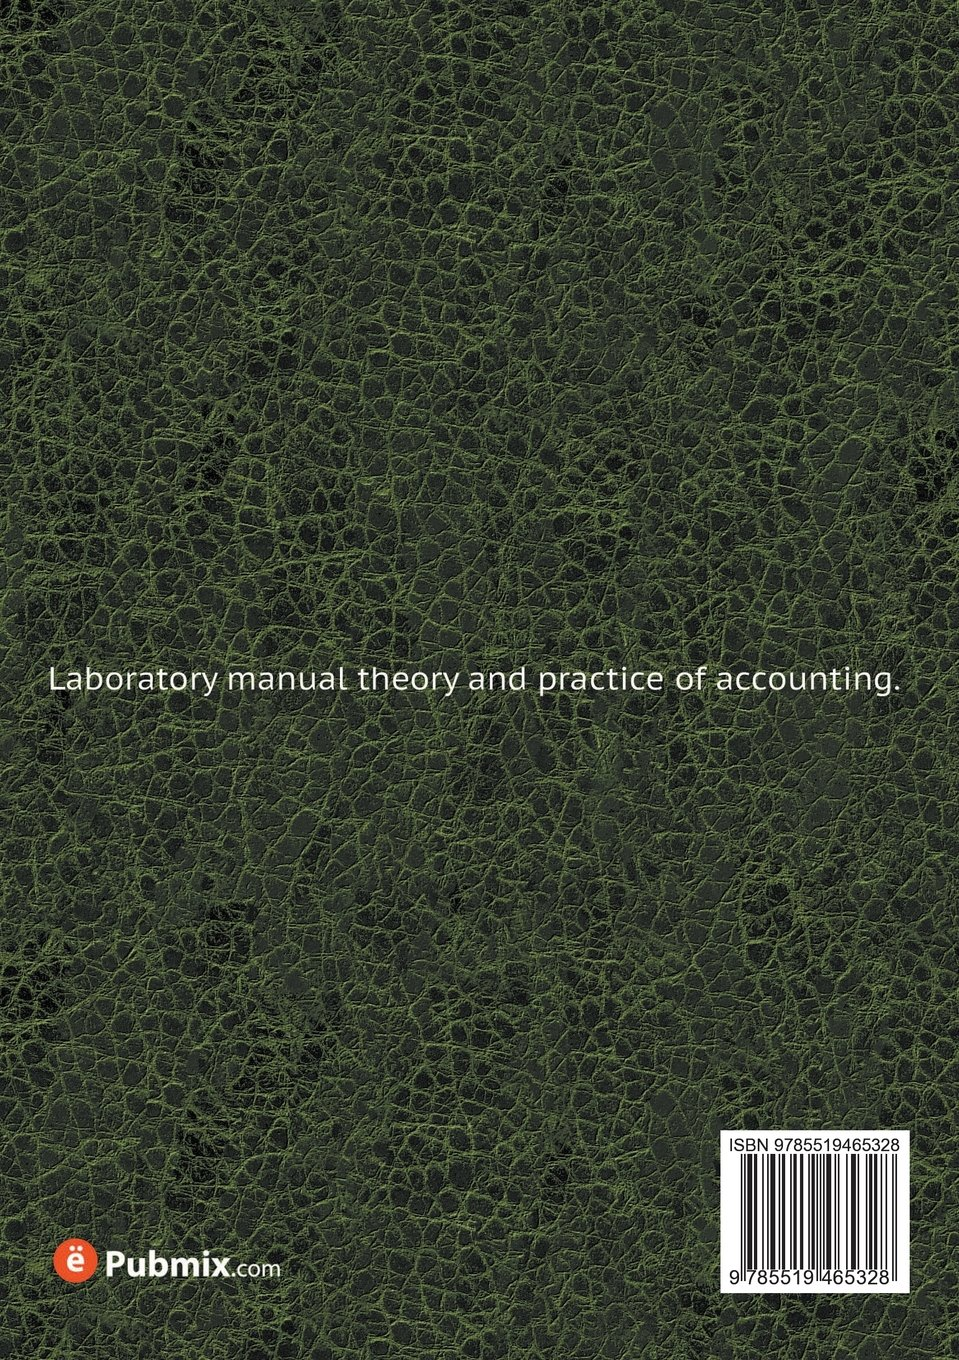 Laboratory manual theory and practice of accounting: Fayette H. Elwell:  9785519465328: Amazon.com: Books